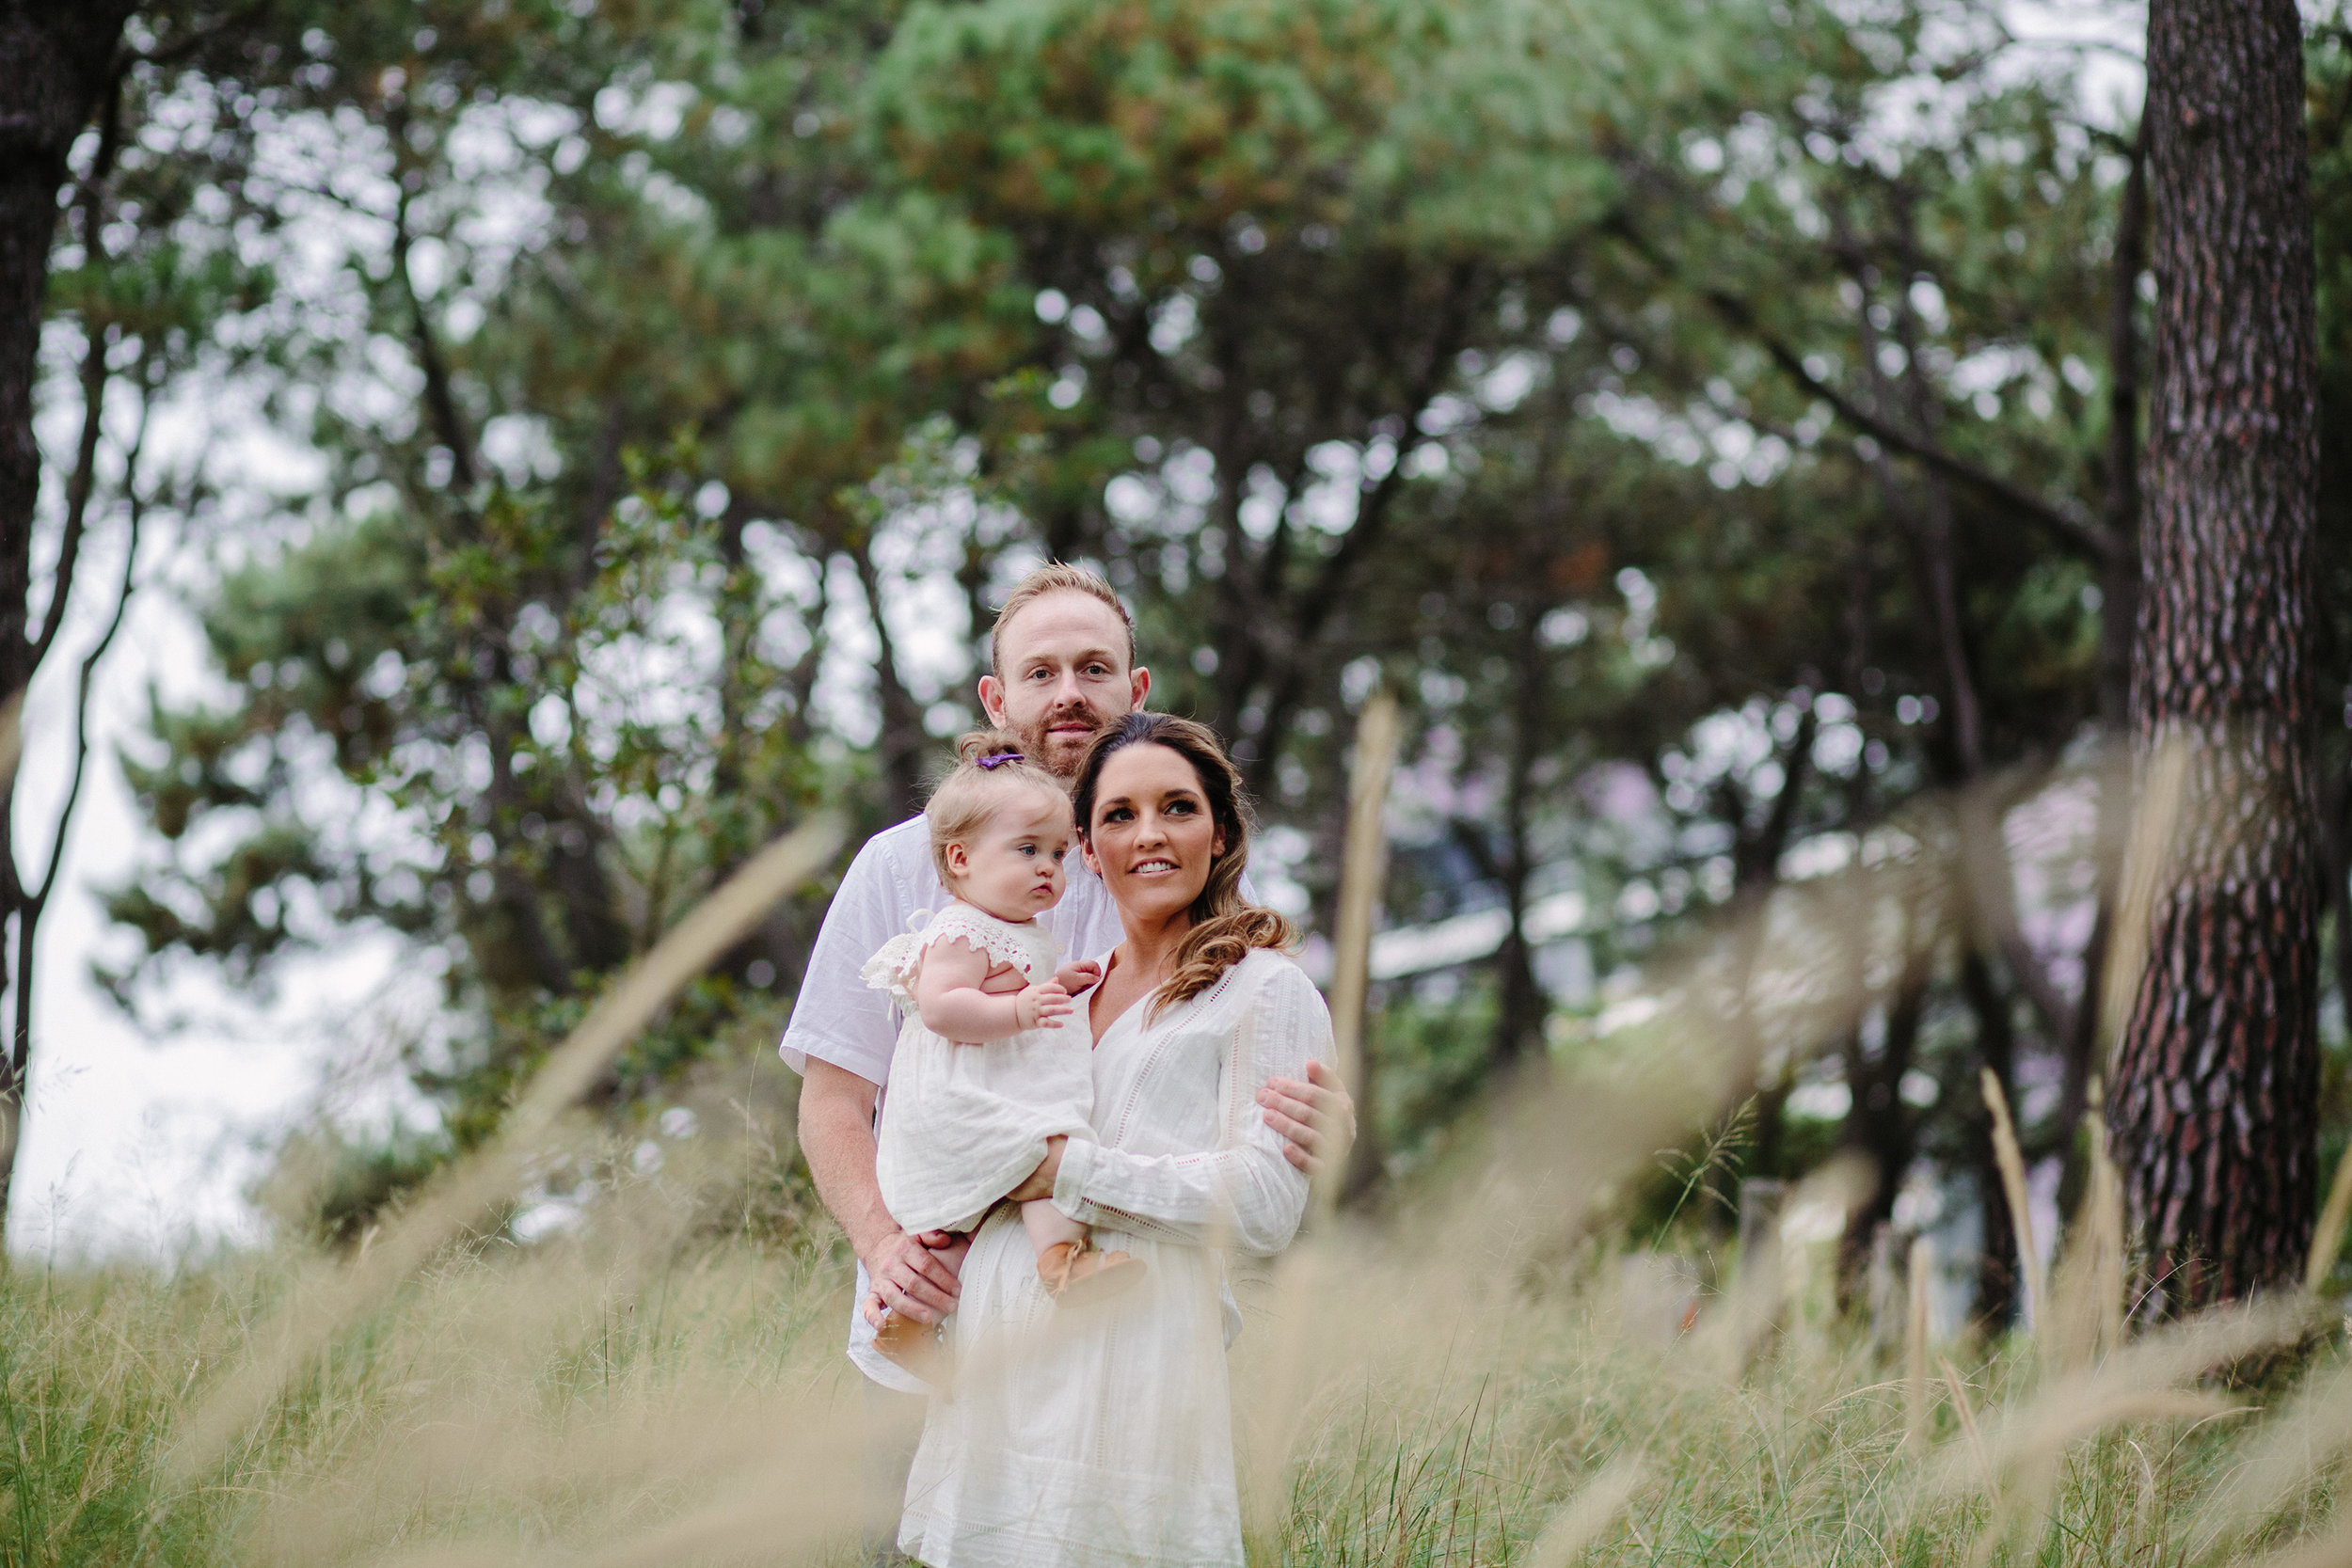 Sweet family moments | hills District photographer